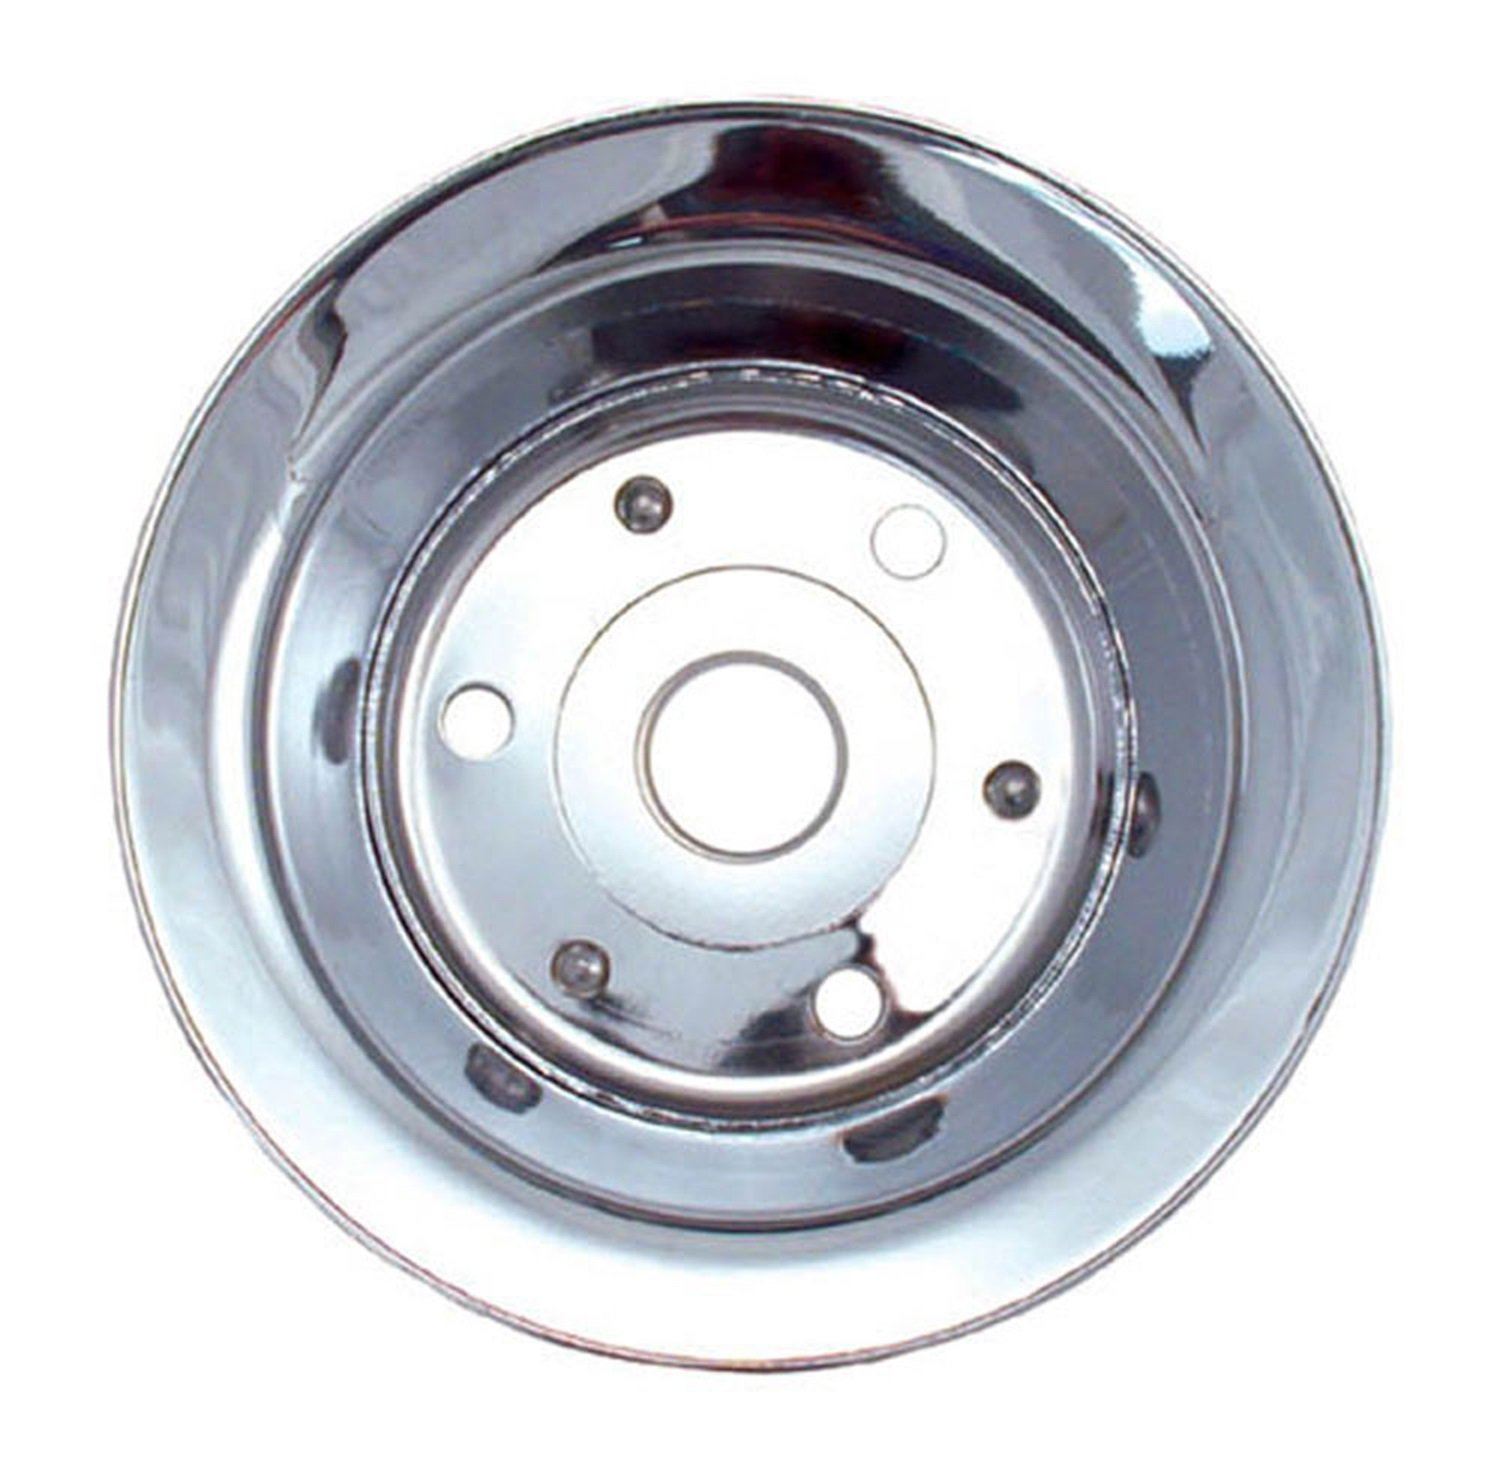 Spectre Performance 4428 Chrome Plated Crankshaft Pulley for Small Block Chevy SPE-4428